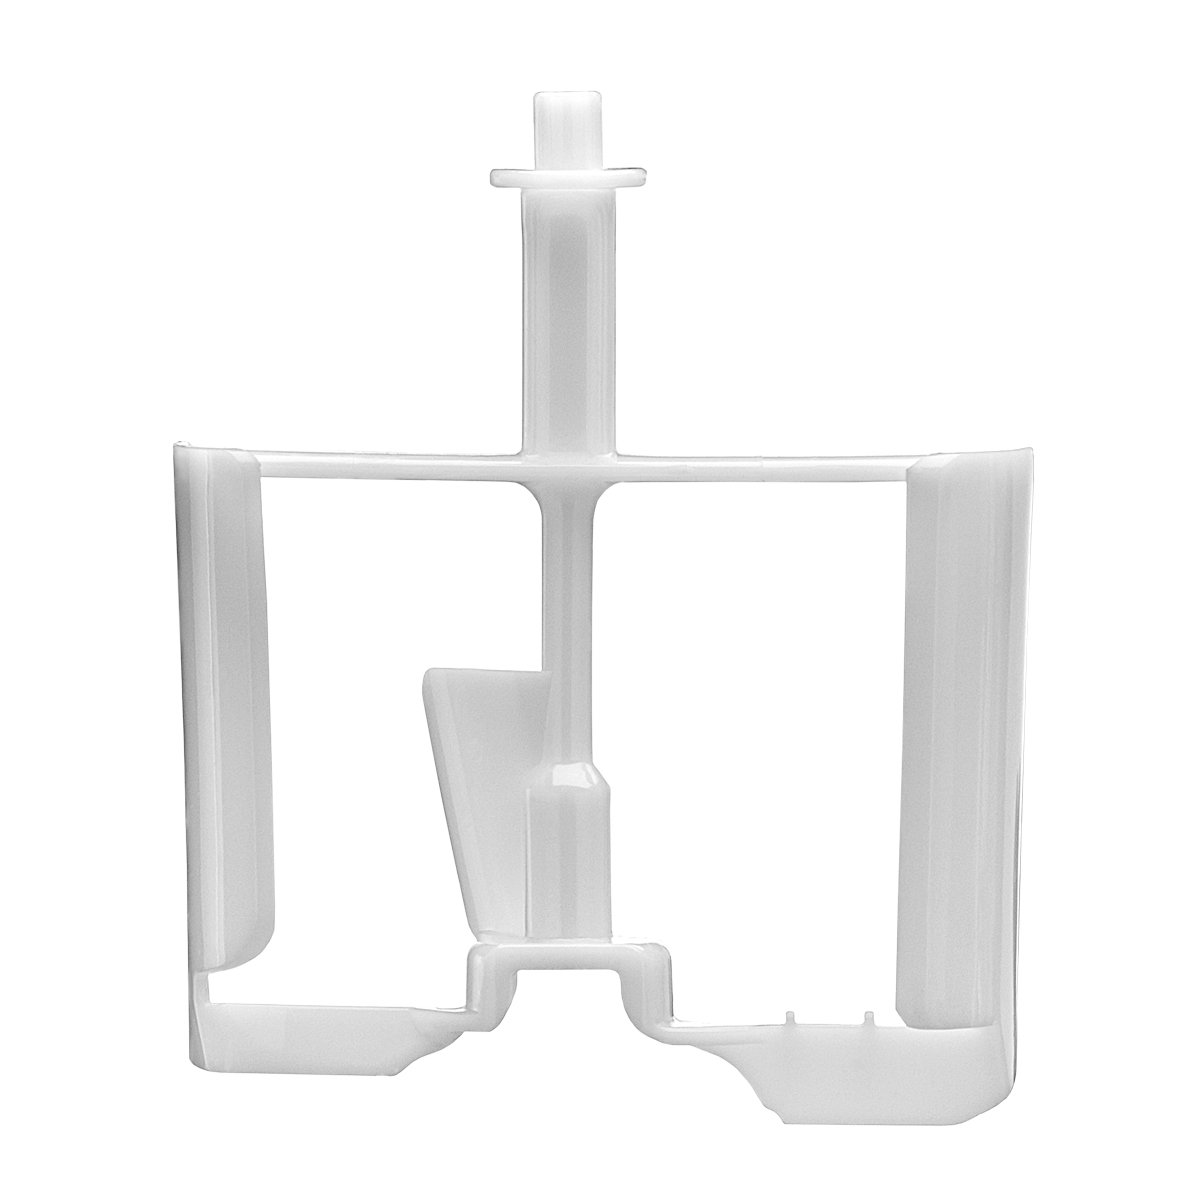 Waring Commercial WCICPDL Mixing Paddle For Wcic20, White